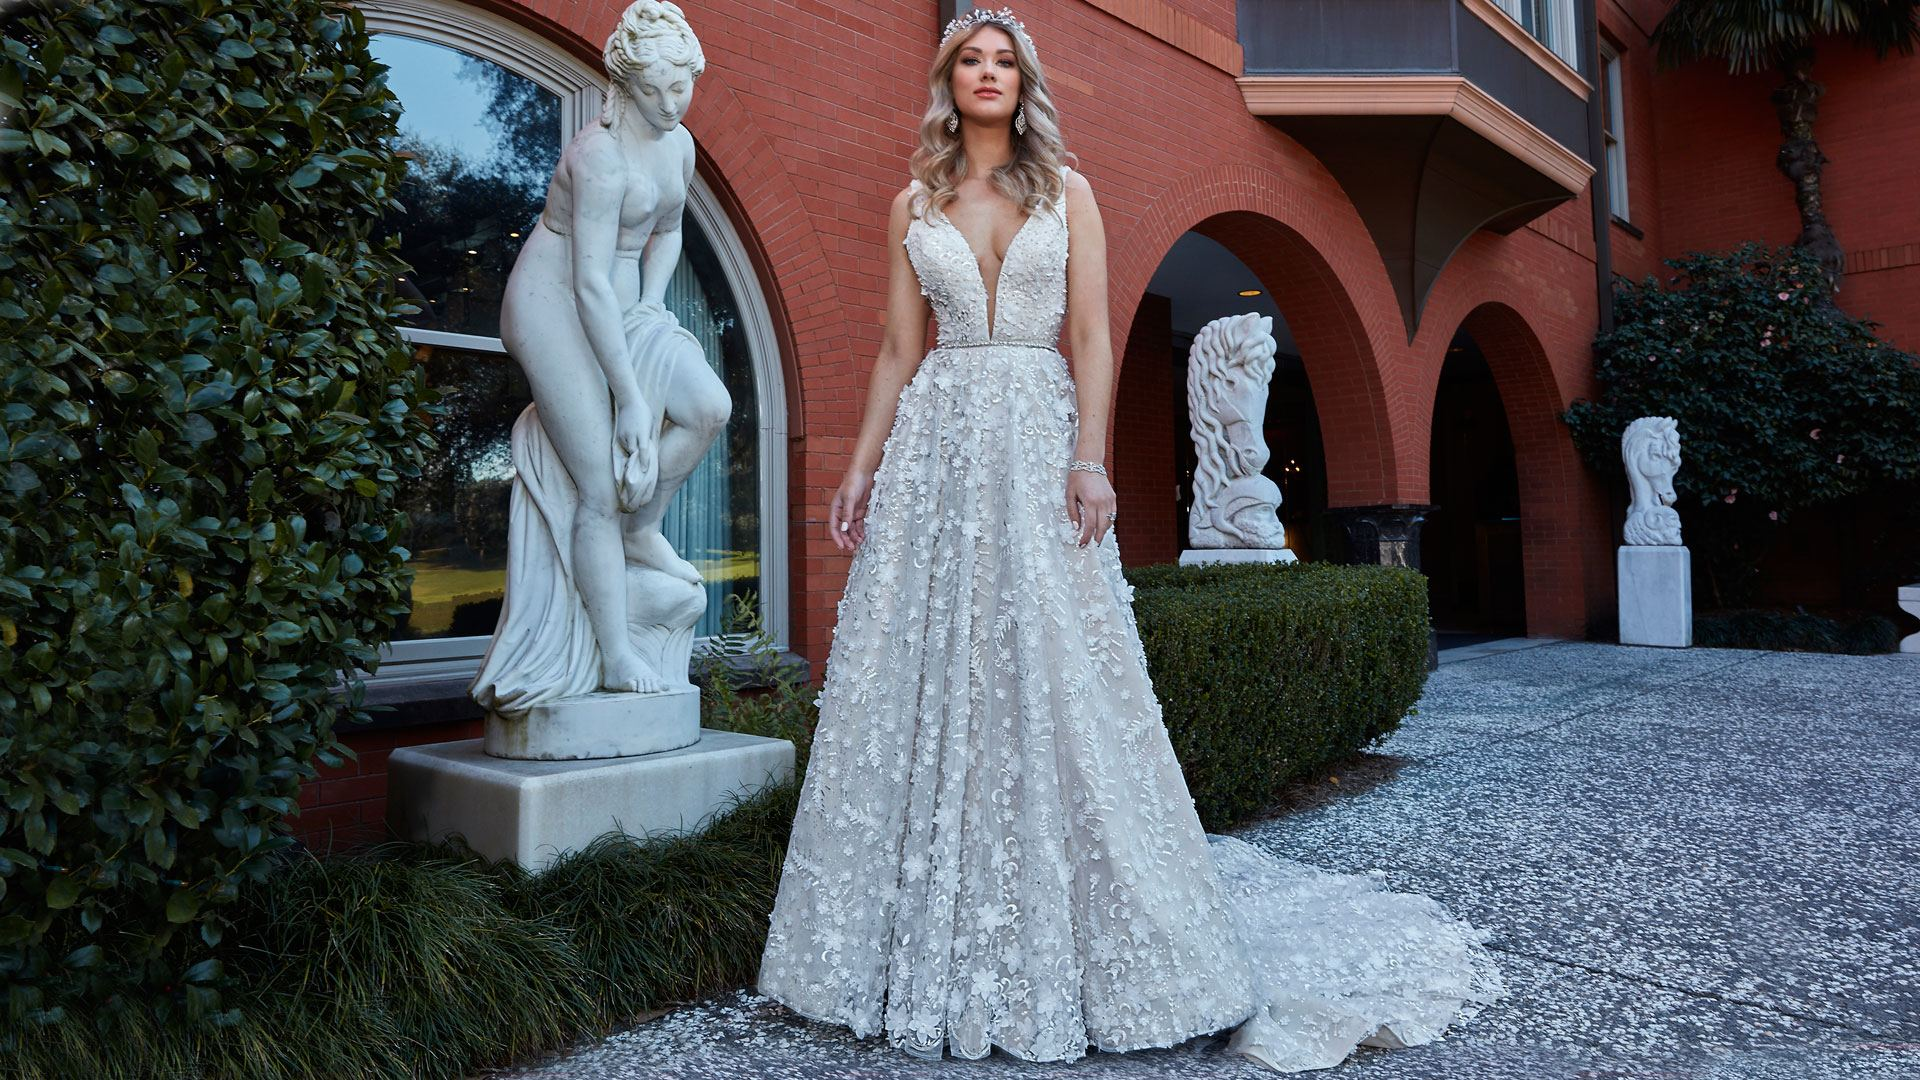 Designers from Down Under – Pallas Couture Arrives in Chicago! The American bridal